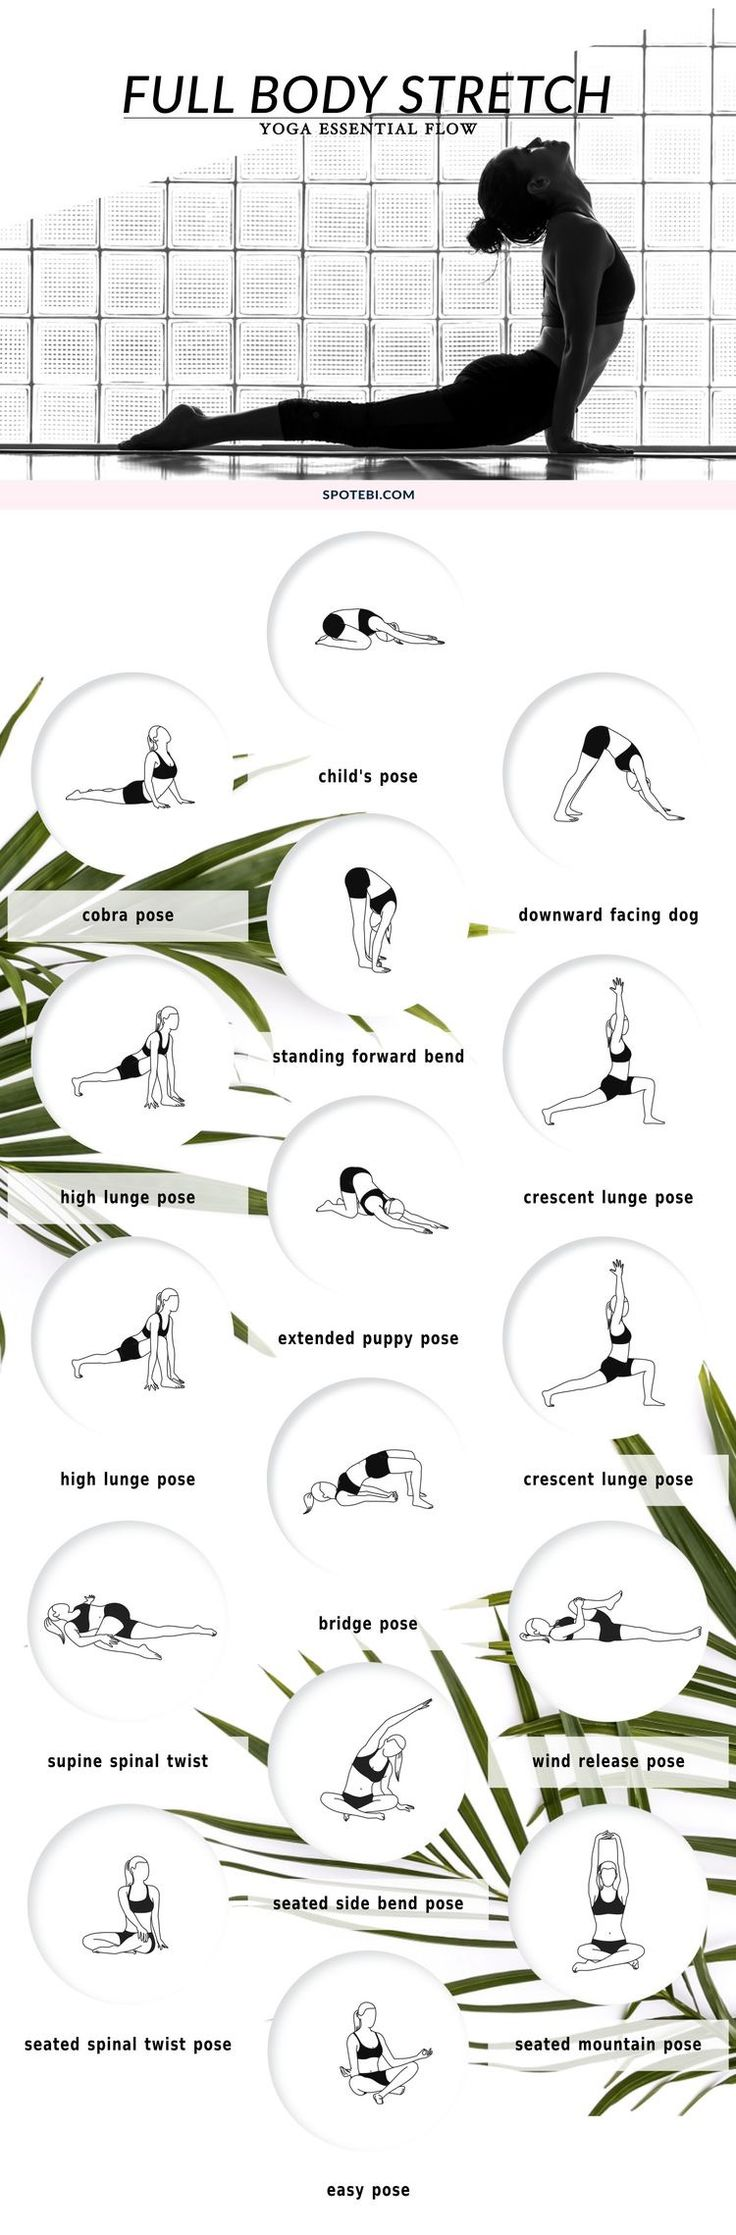 | Posted By: NewHowToLoseBellyFat.com